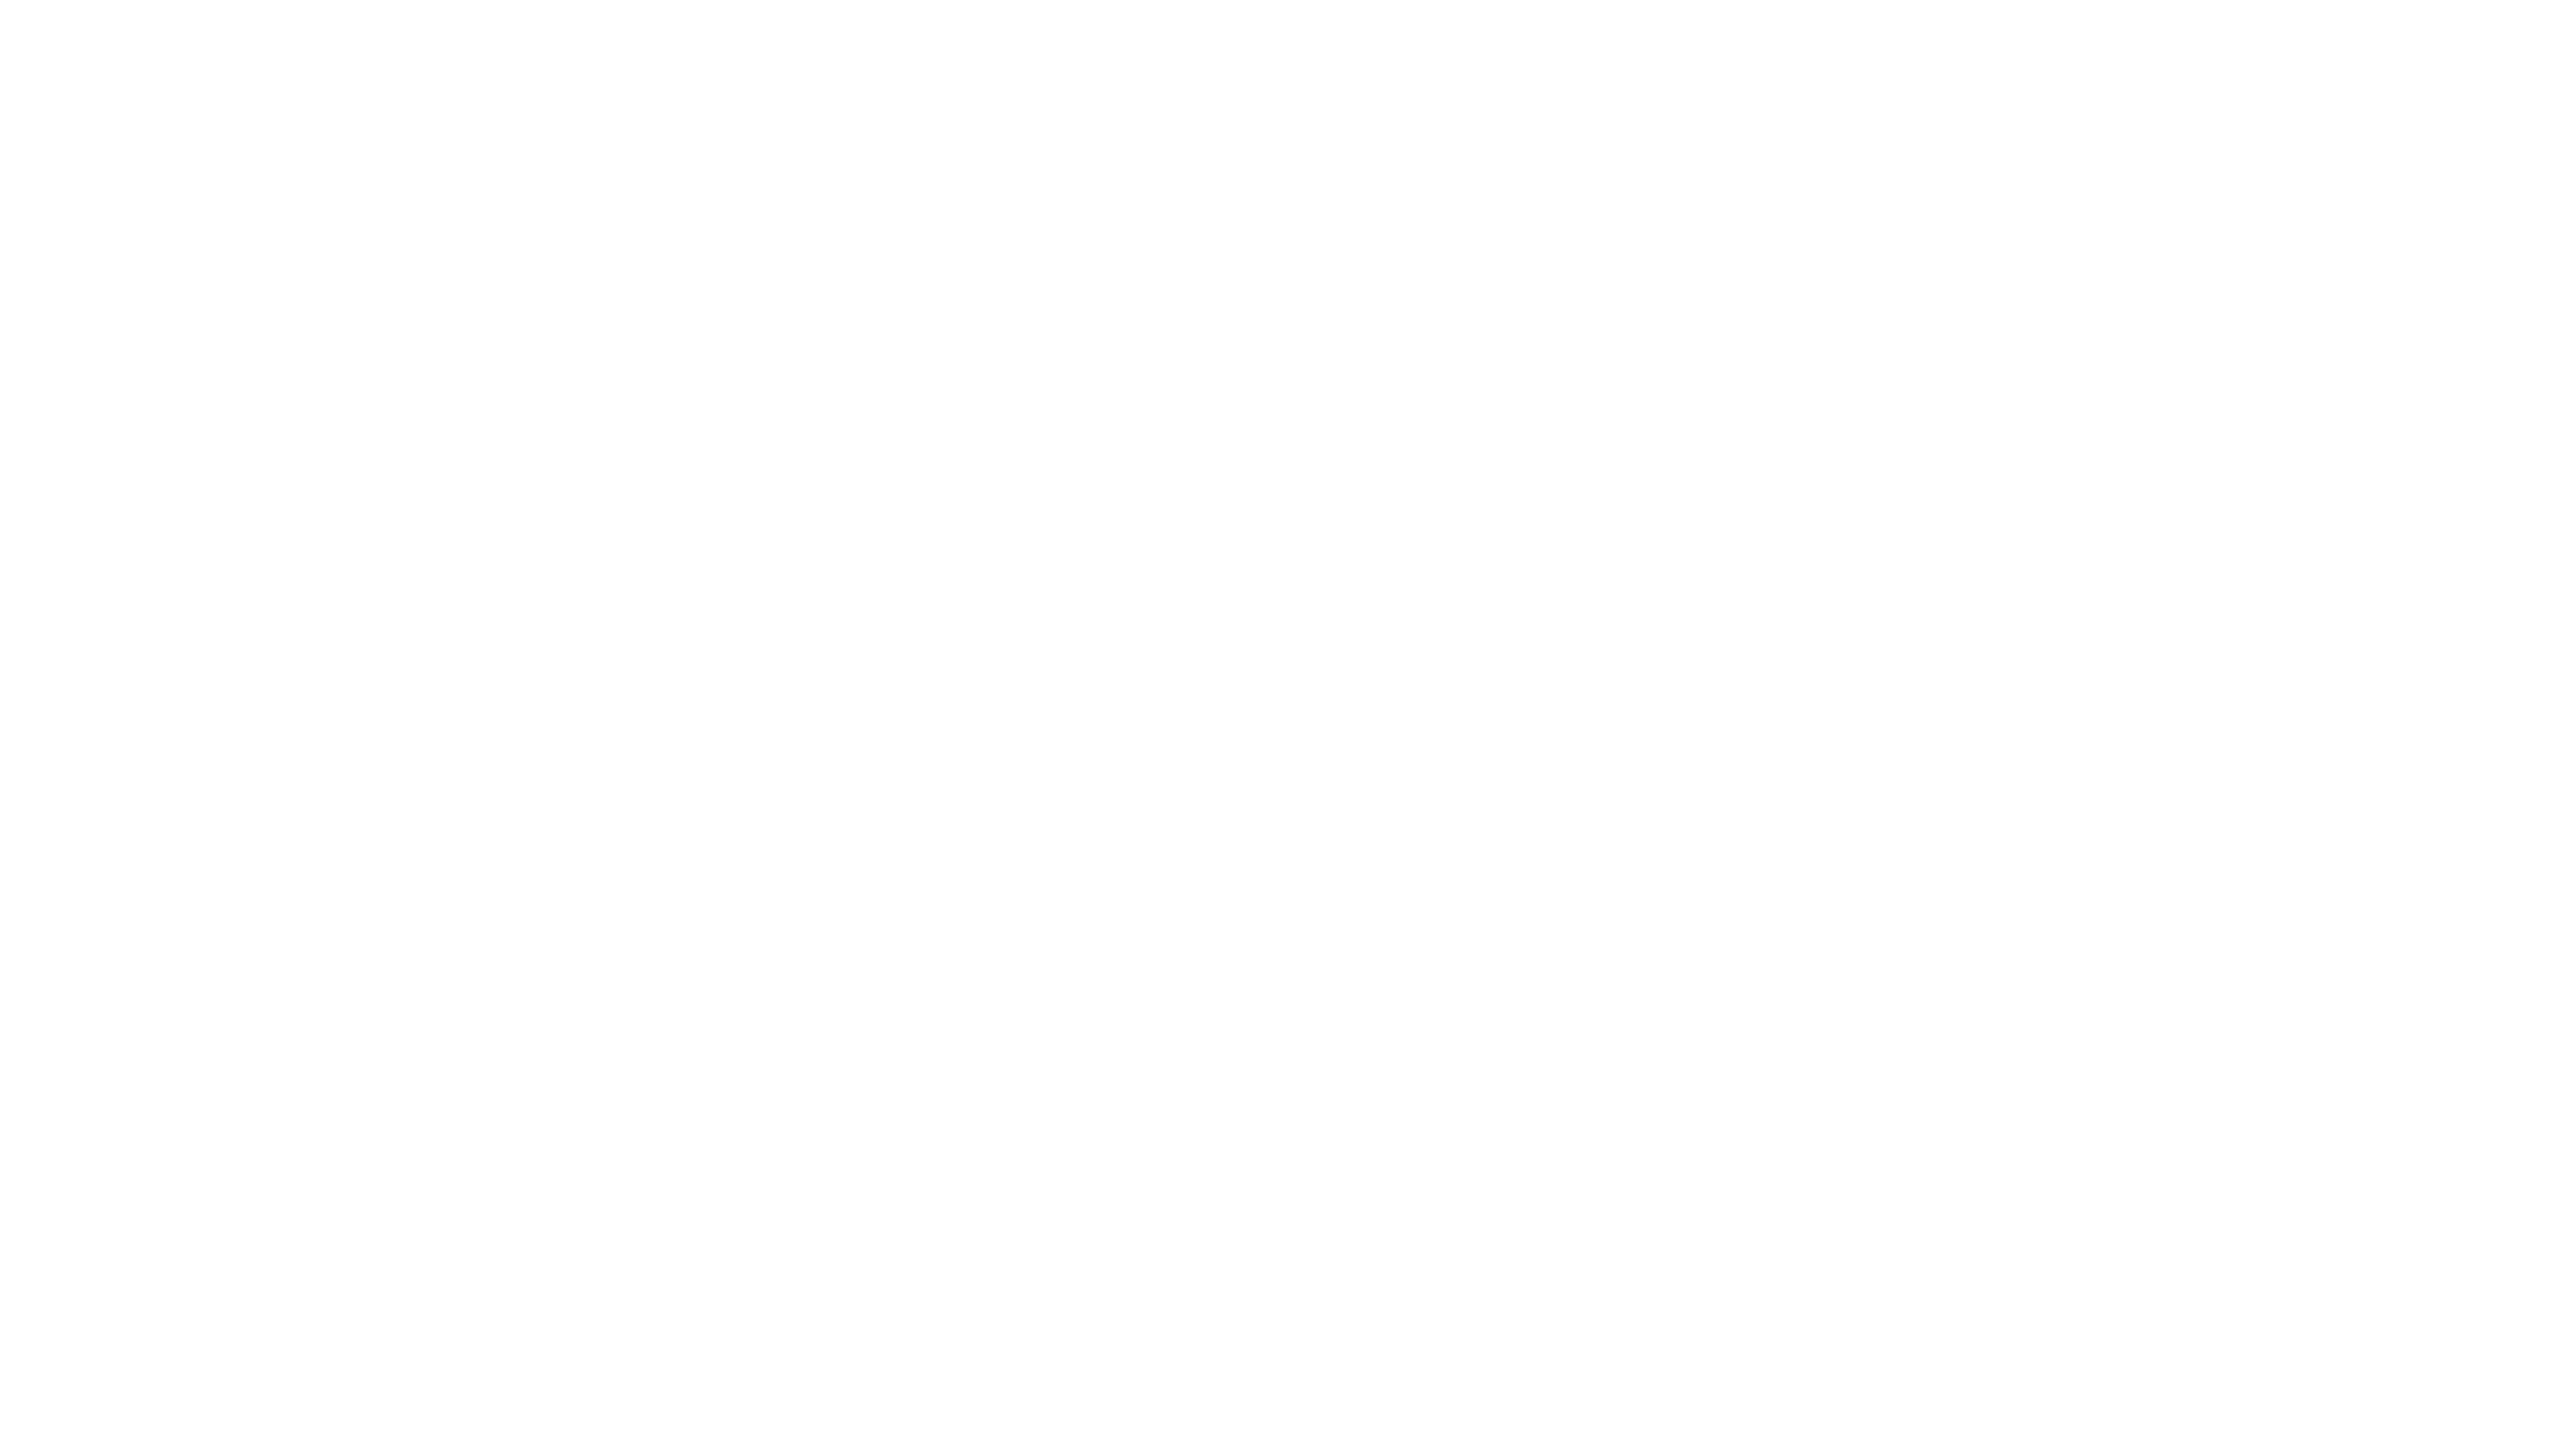 Preparing to Celebrate Christ at Easter